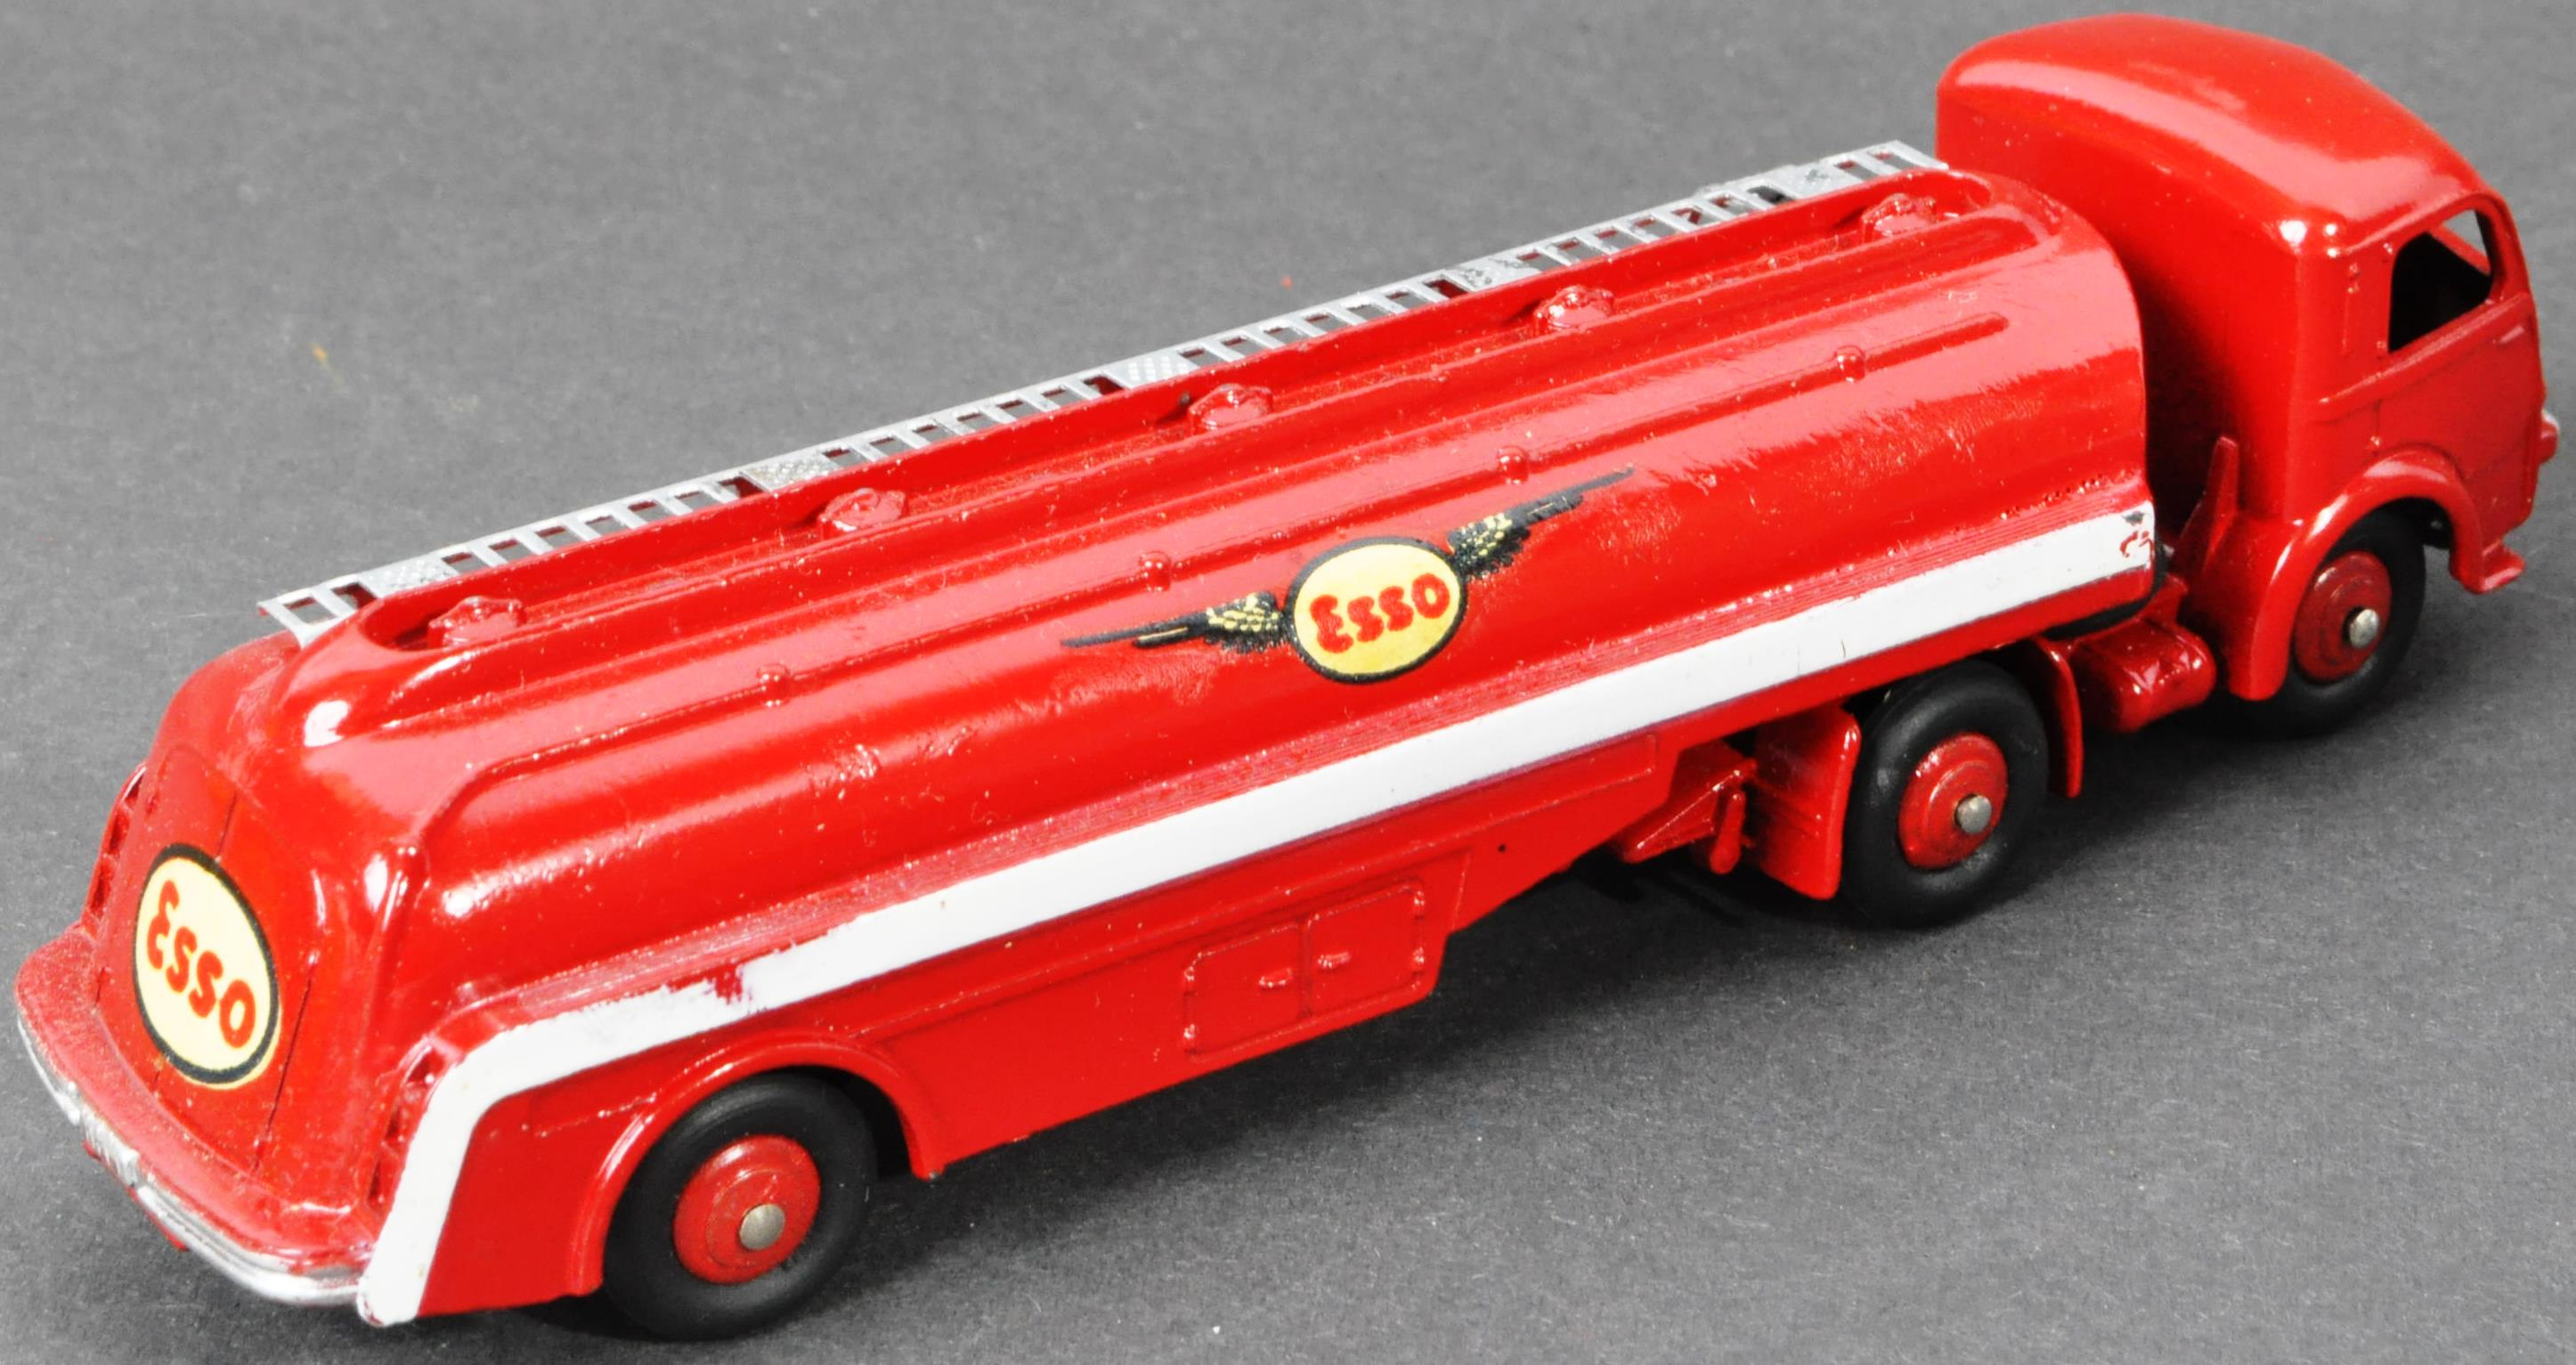 FRENCH DINKY TOYS - ORIGINAL BOXED VINTAGE DIECAST MODEL - Image 6 of 7